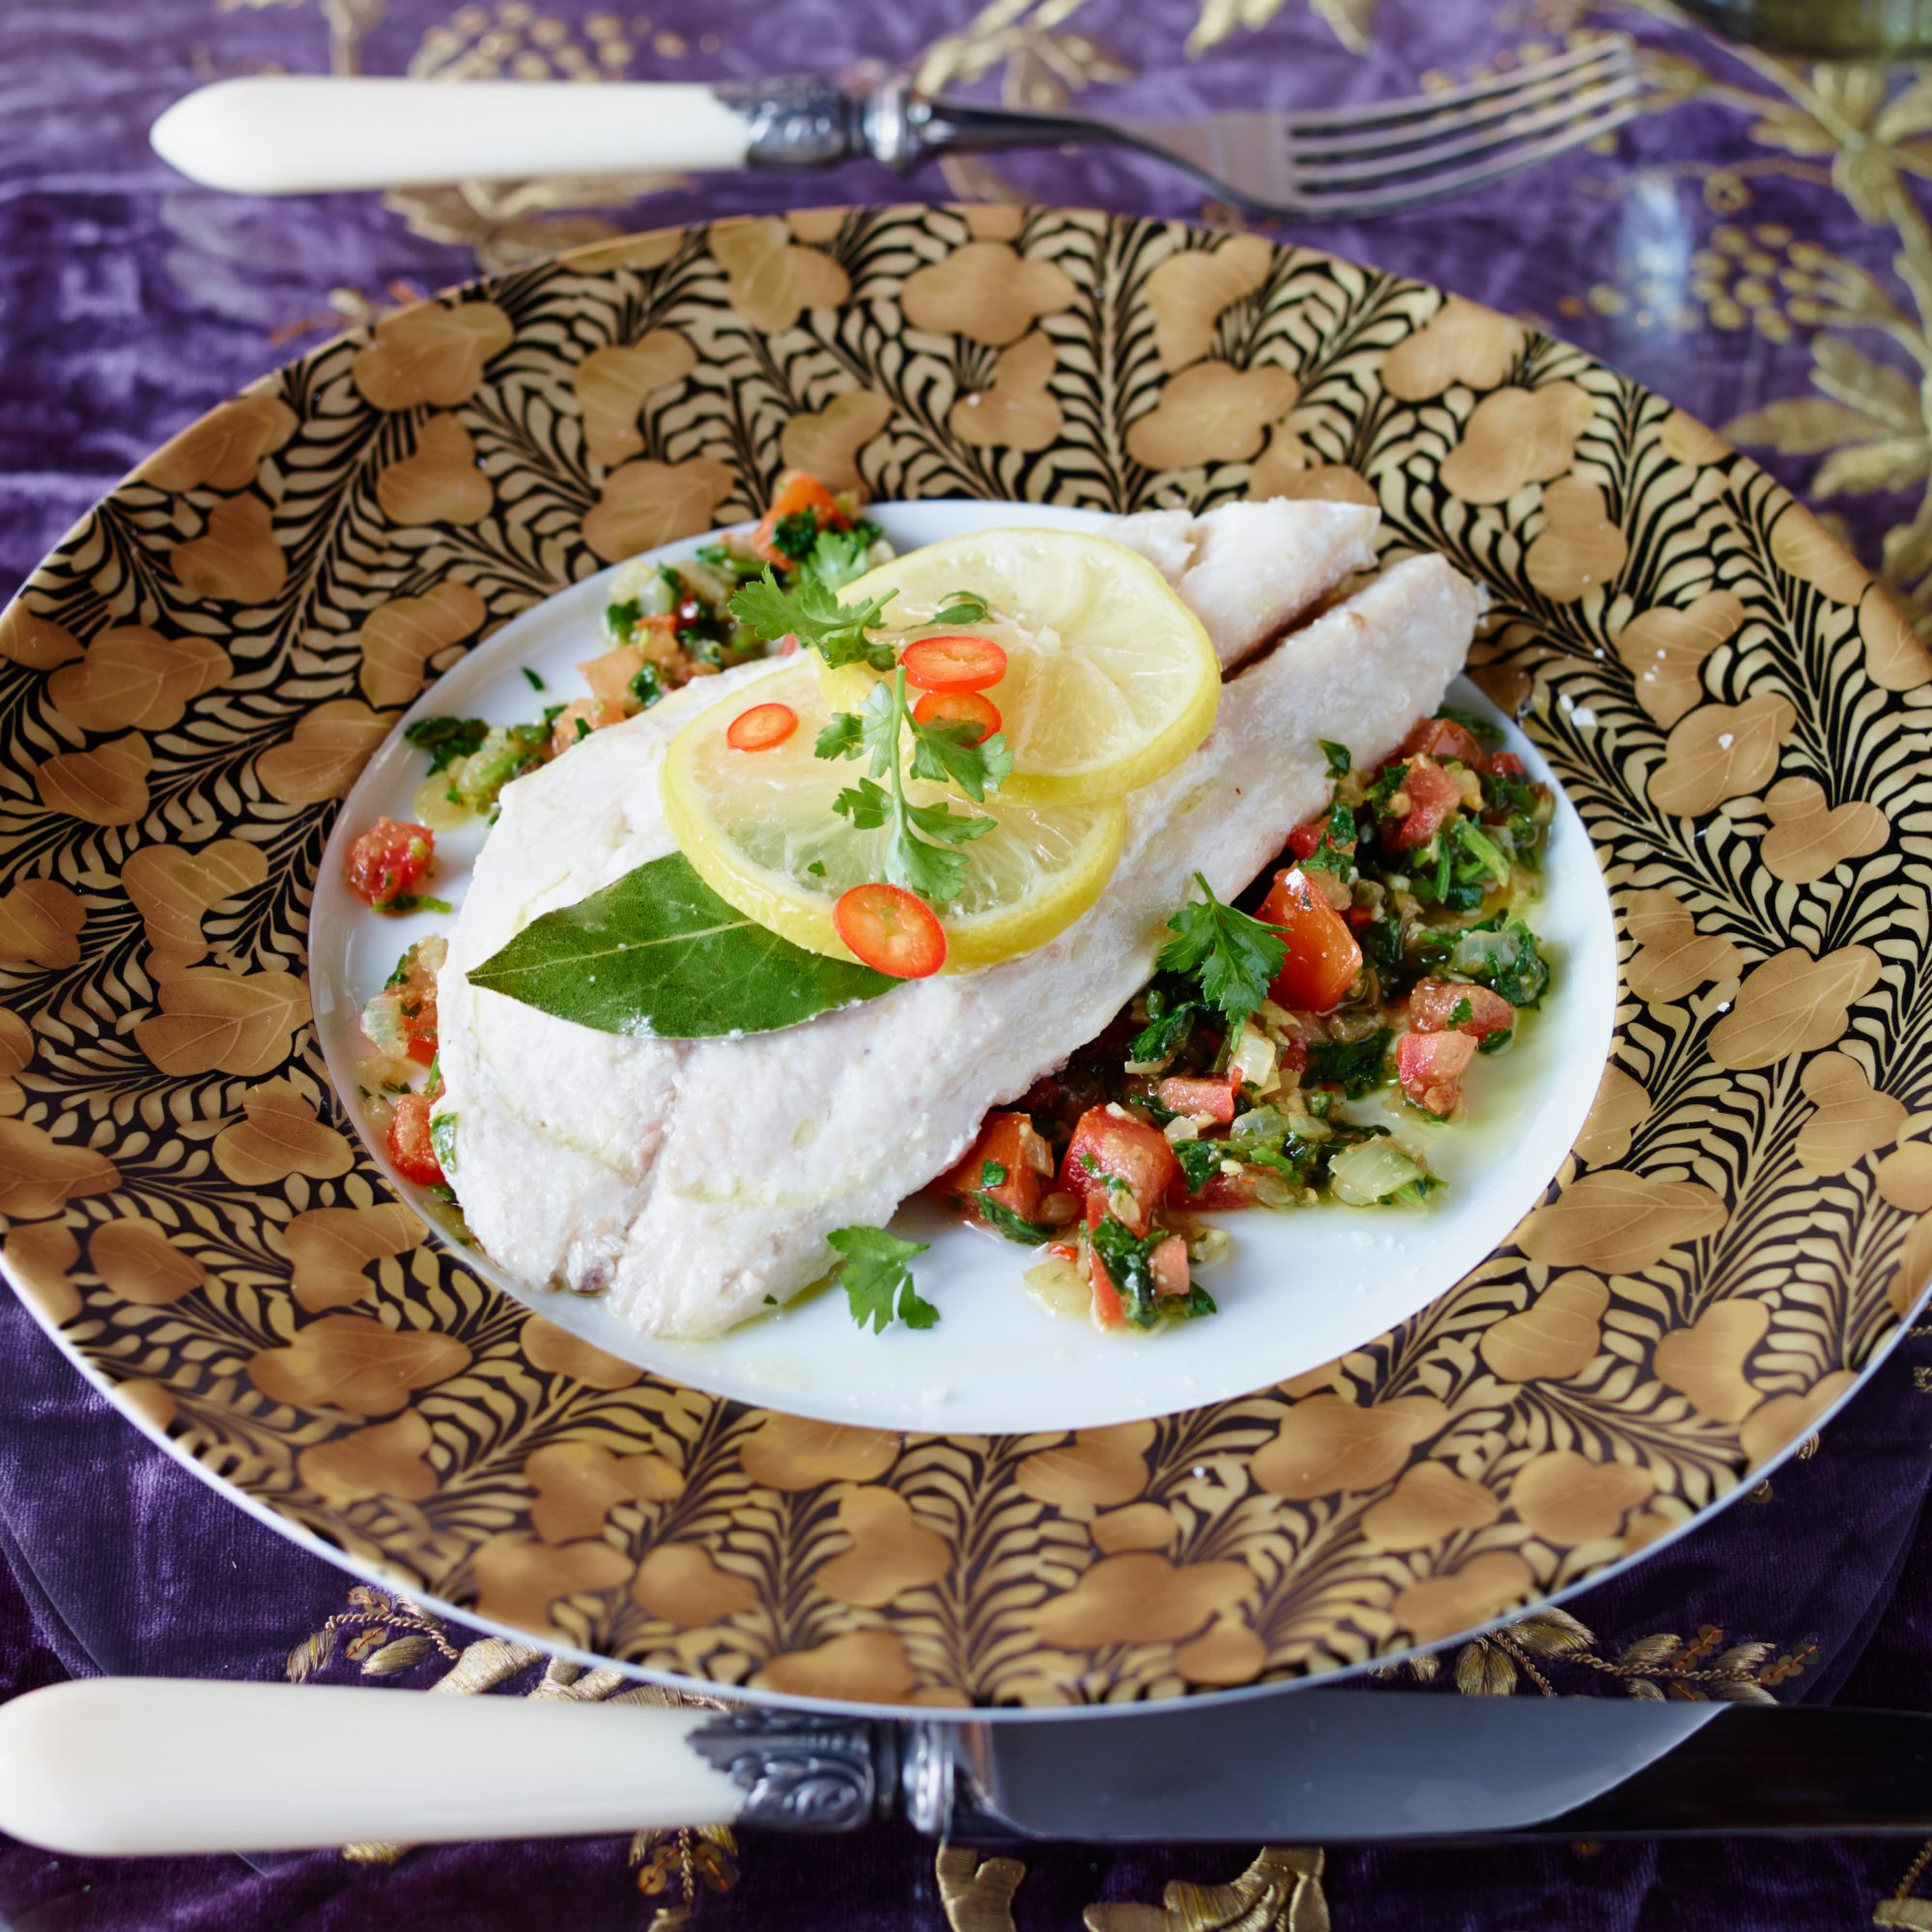 Striped Bass en Papillote with Lebanese Salad